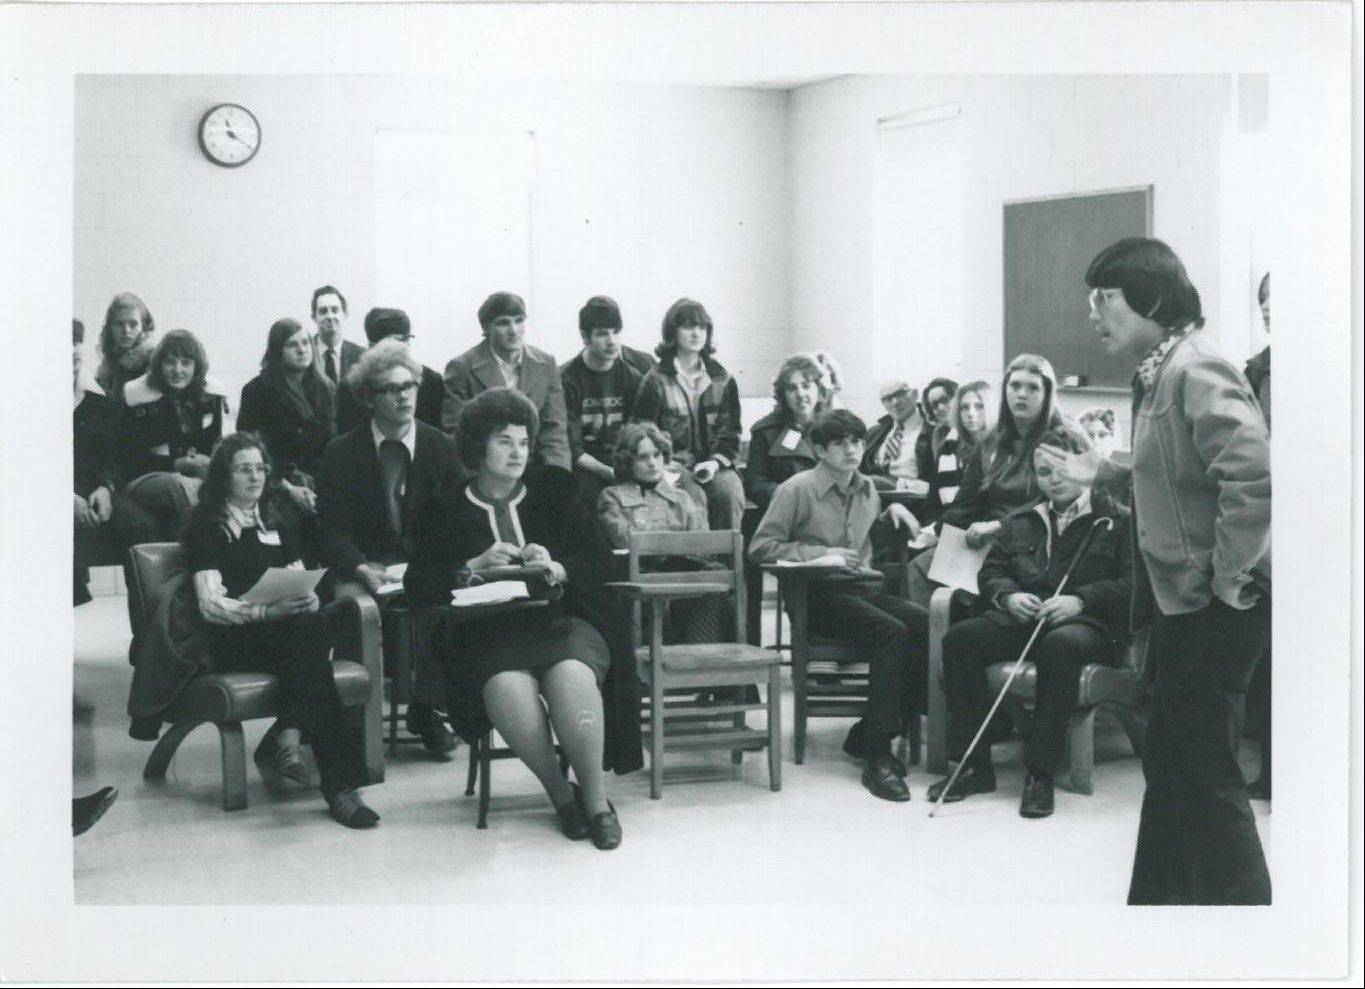 A 1973 psychology class at Judson College is taught by Ted Hsieh, who retired last year after more than 40 years of teaching at the university, which marks its 50th year this year.